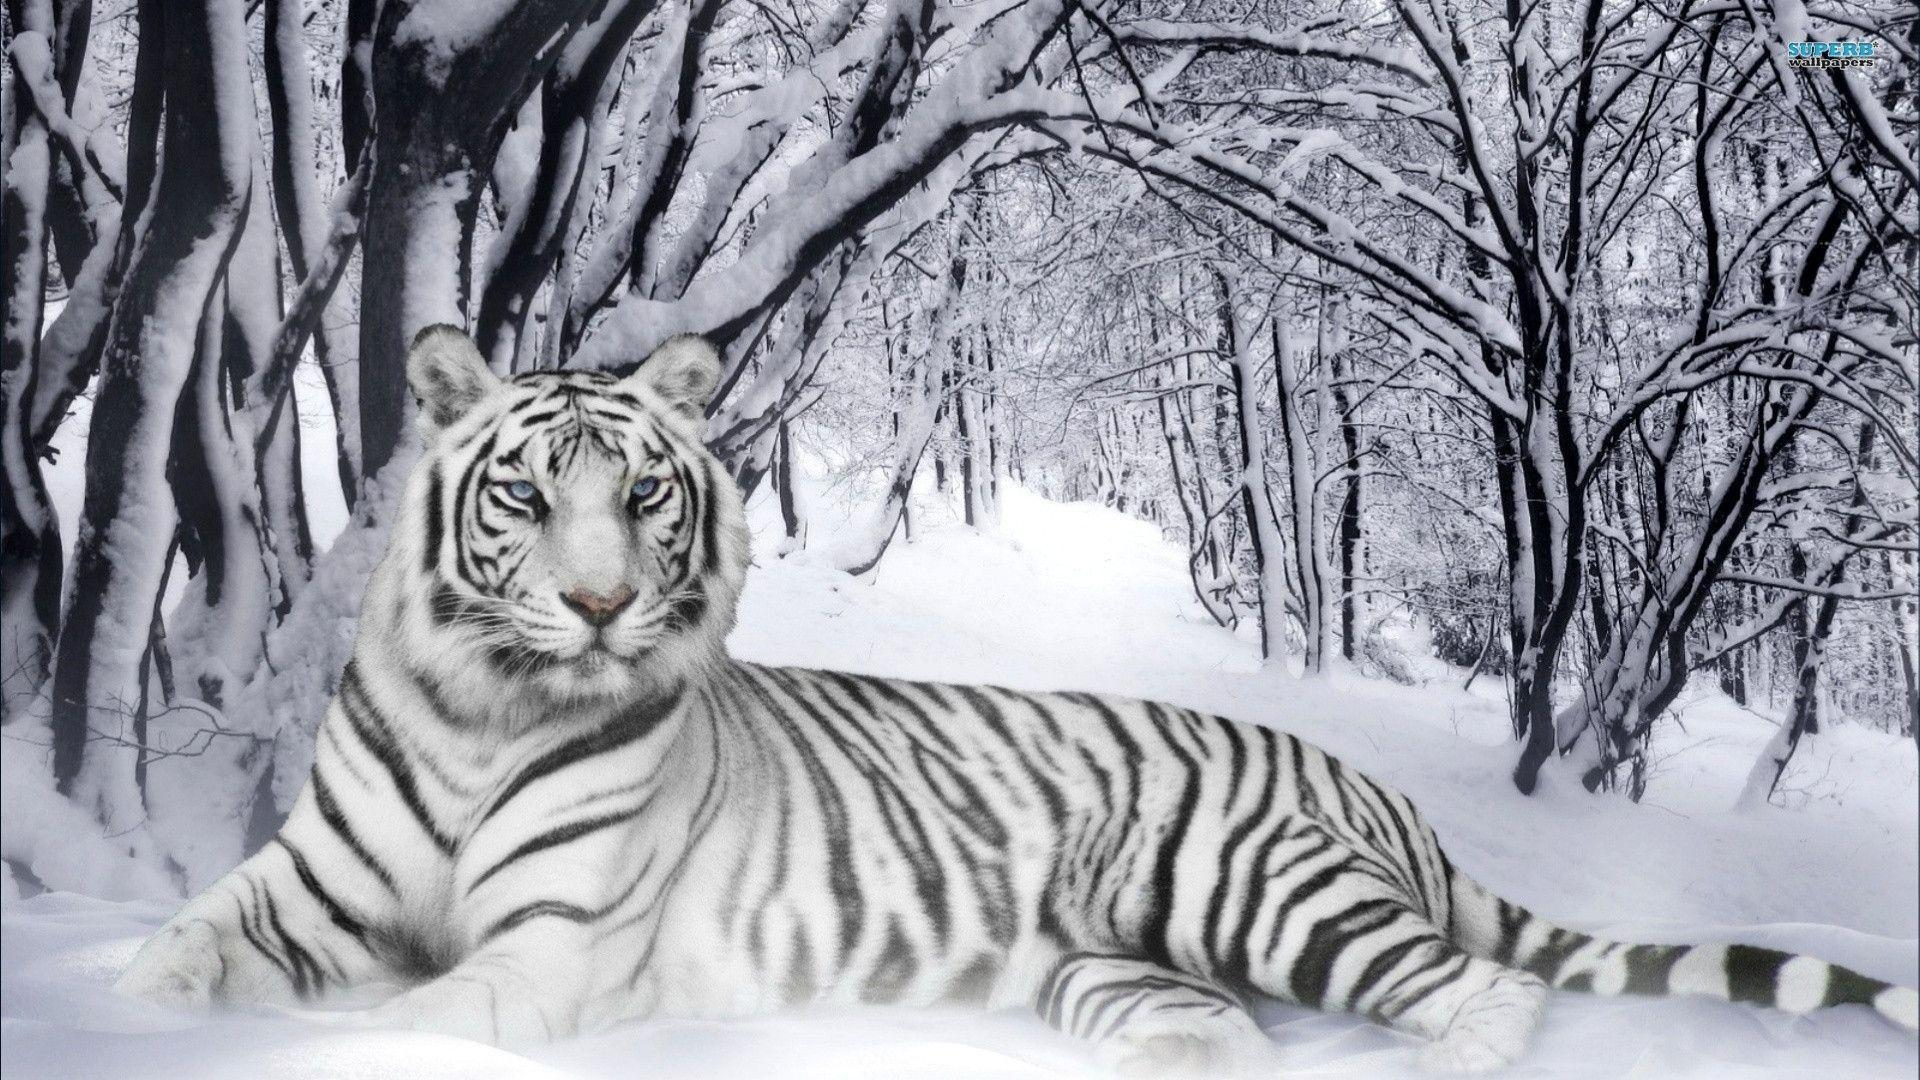 White Siberian Tiger Pictures Hd Image 3 HD Wallpapers